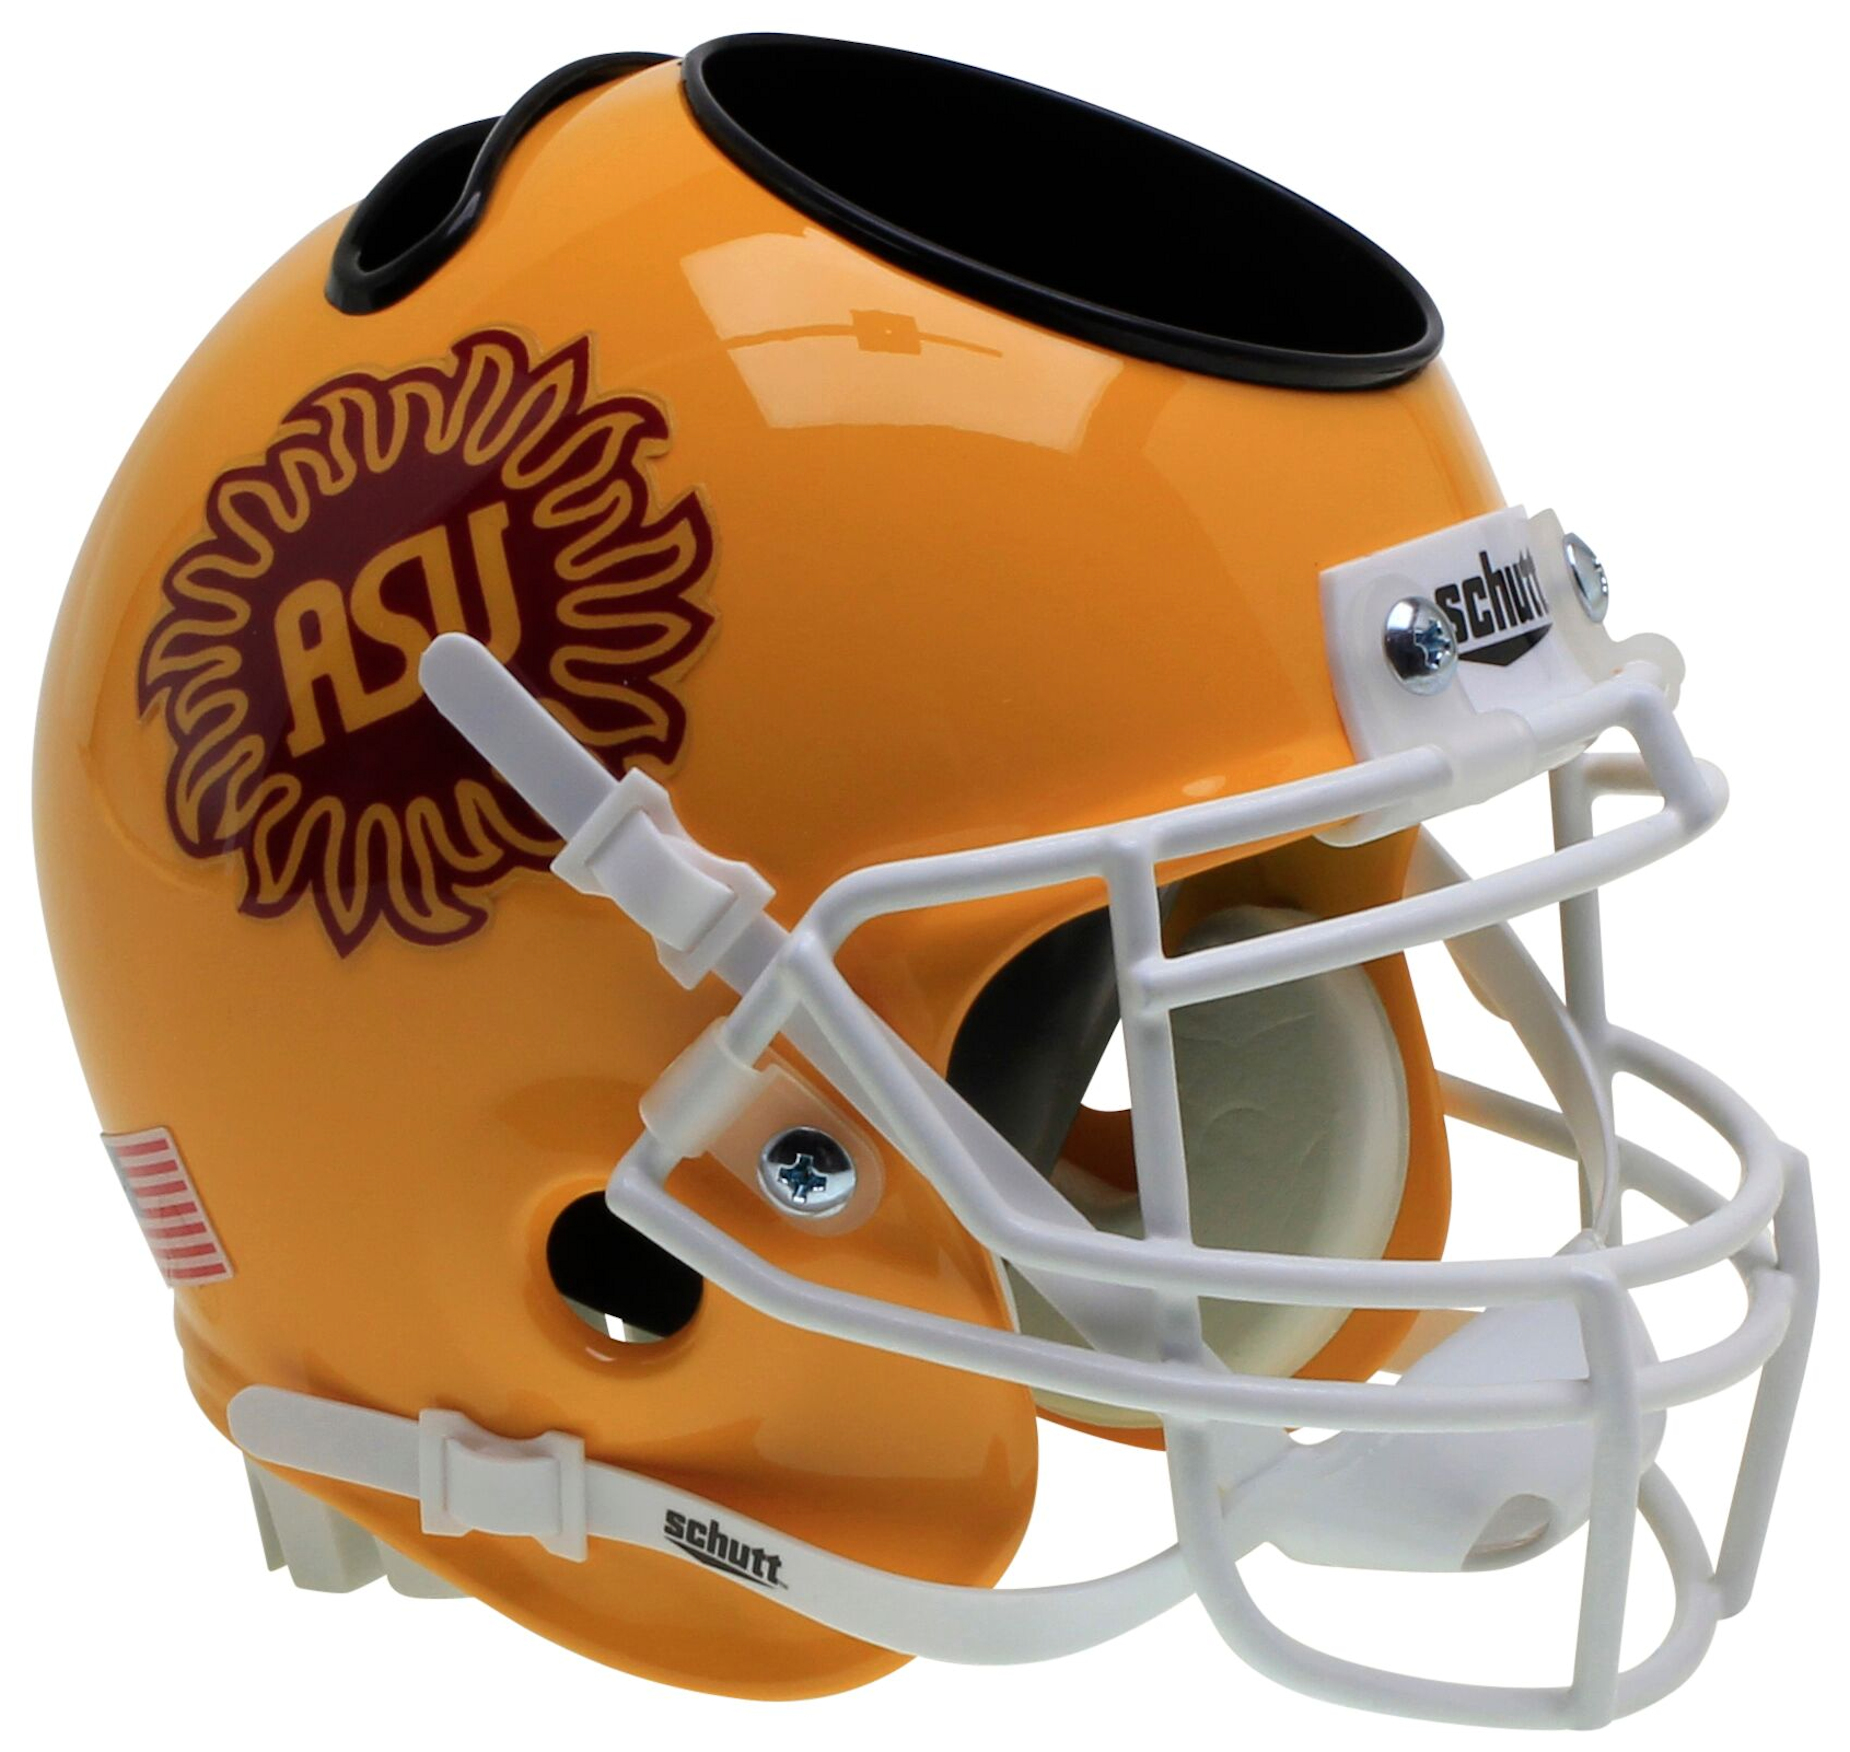 Arizona State Sun Devils Miniature Football Helmet Desk Caddy <B>Sunburst</B>